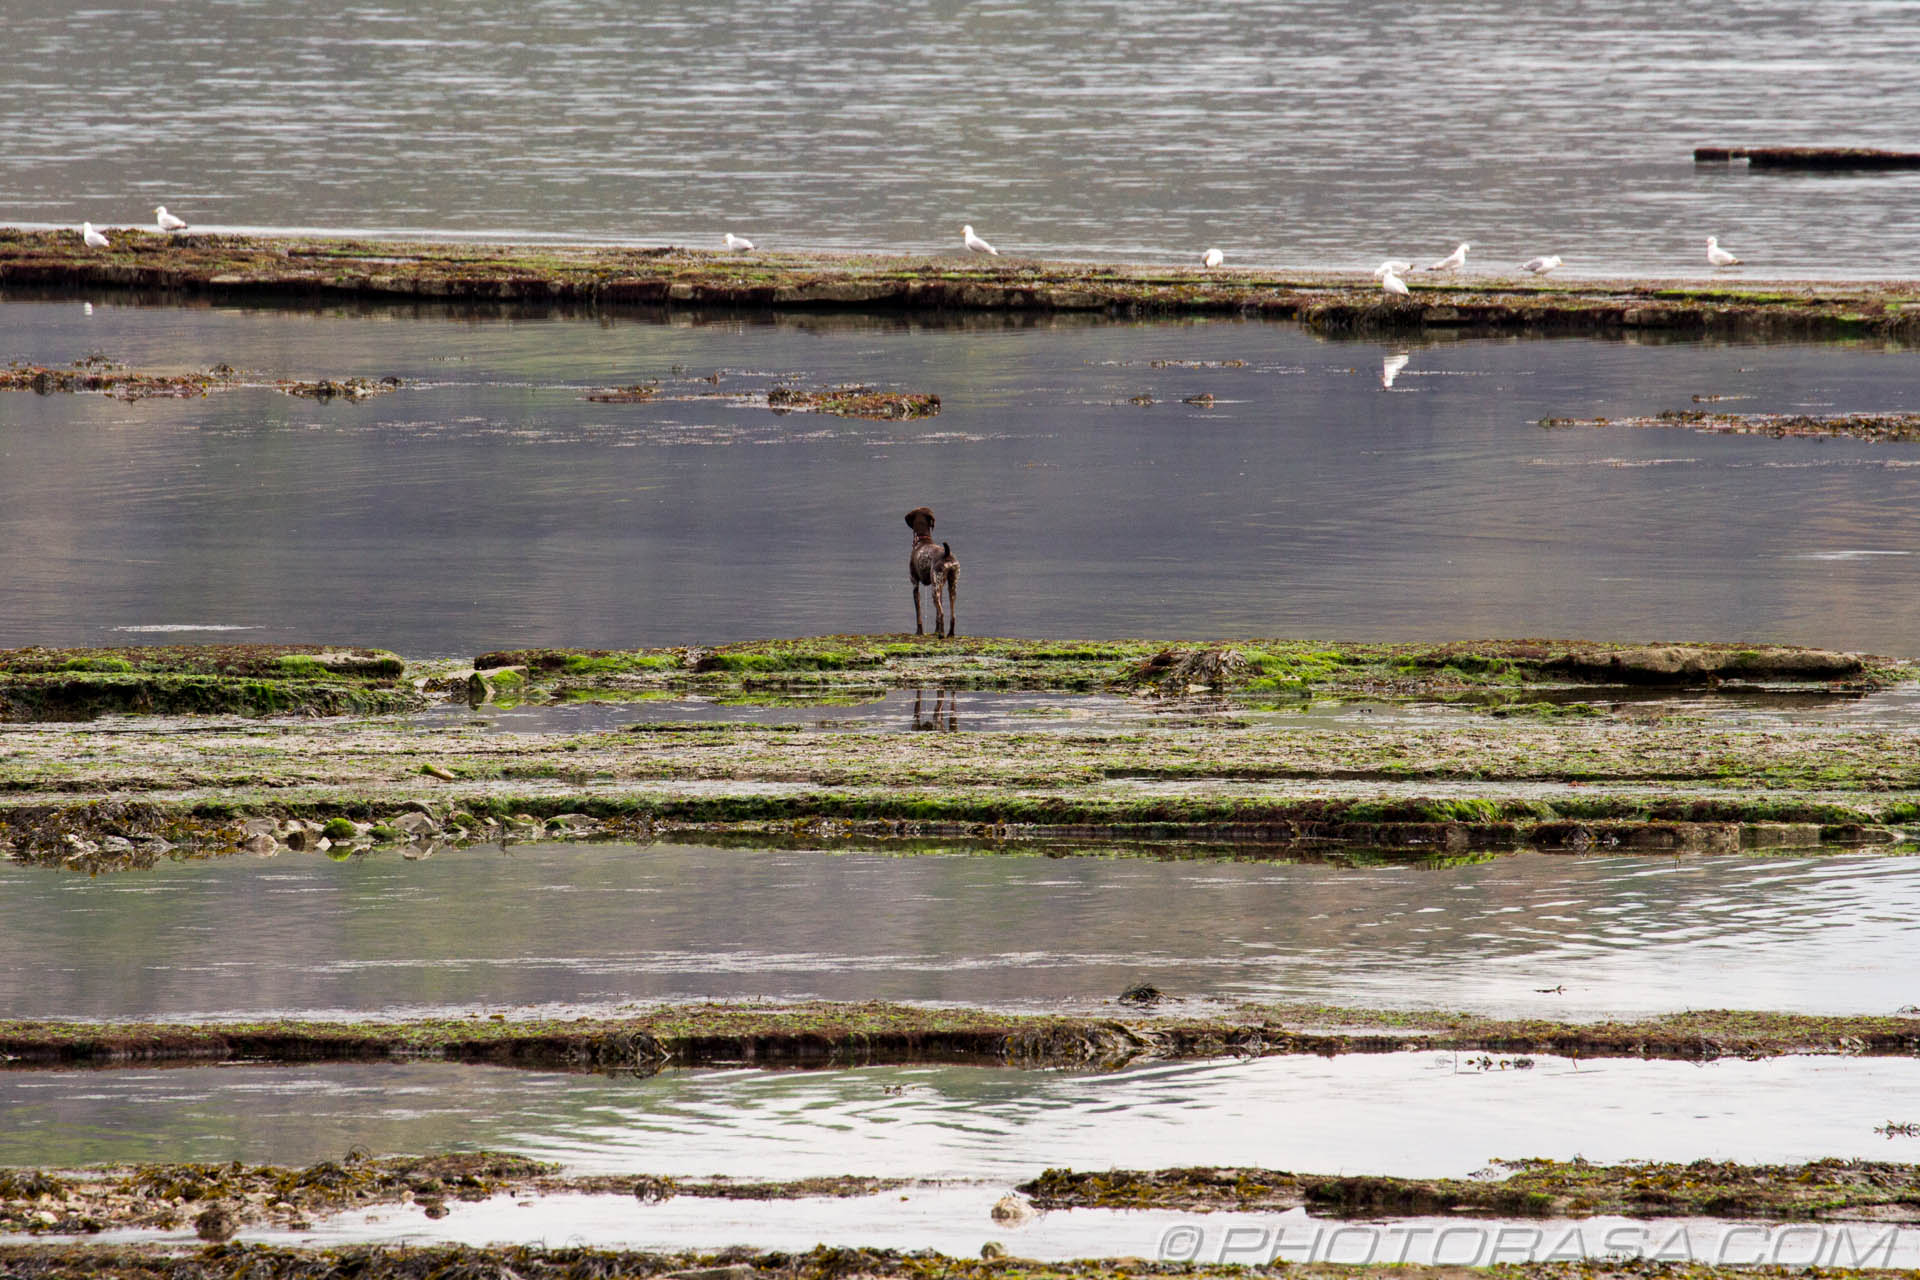 http://photorasa.com/walking-dog-jurassic-coast/looking-across-the-water-at-his-prey/